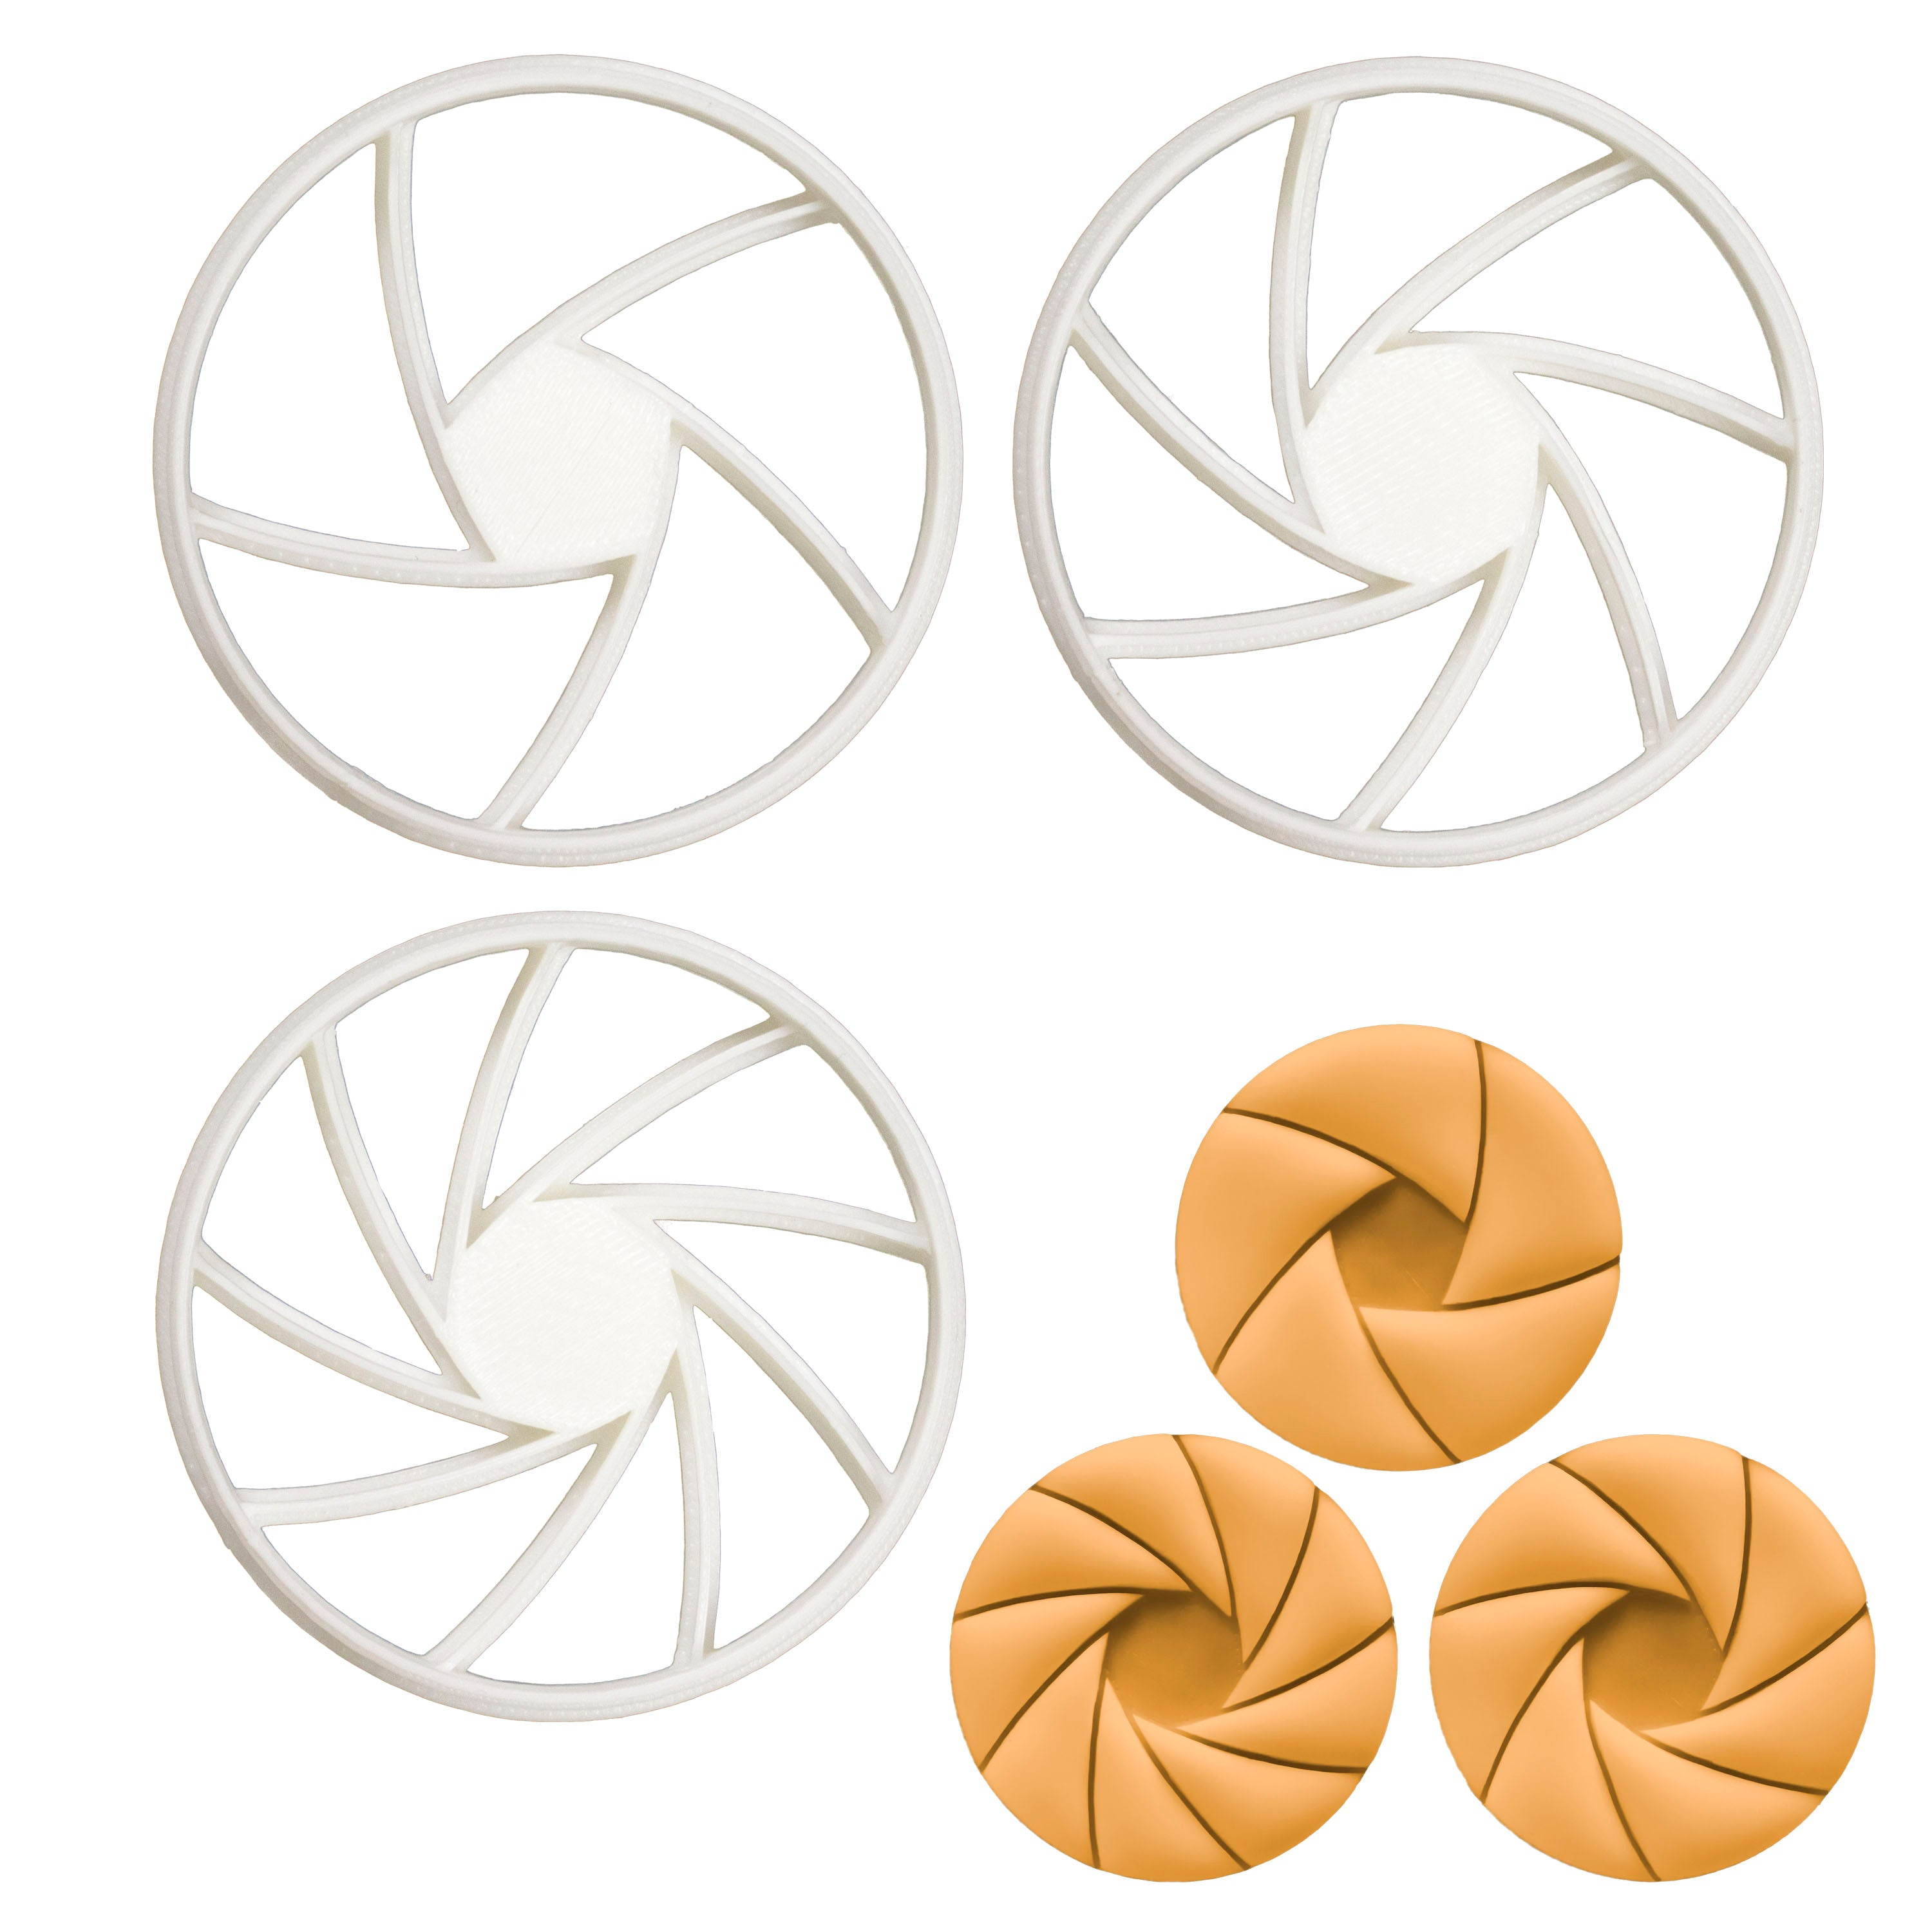 Set of 3 Aperture cookie cutters (Designs: 5, 7, and 9 Blades)